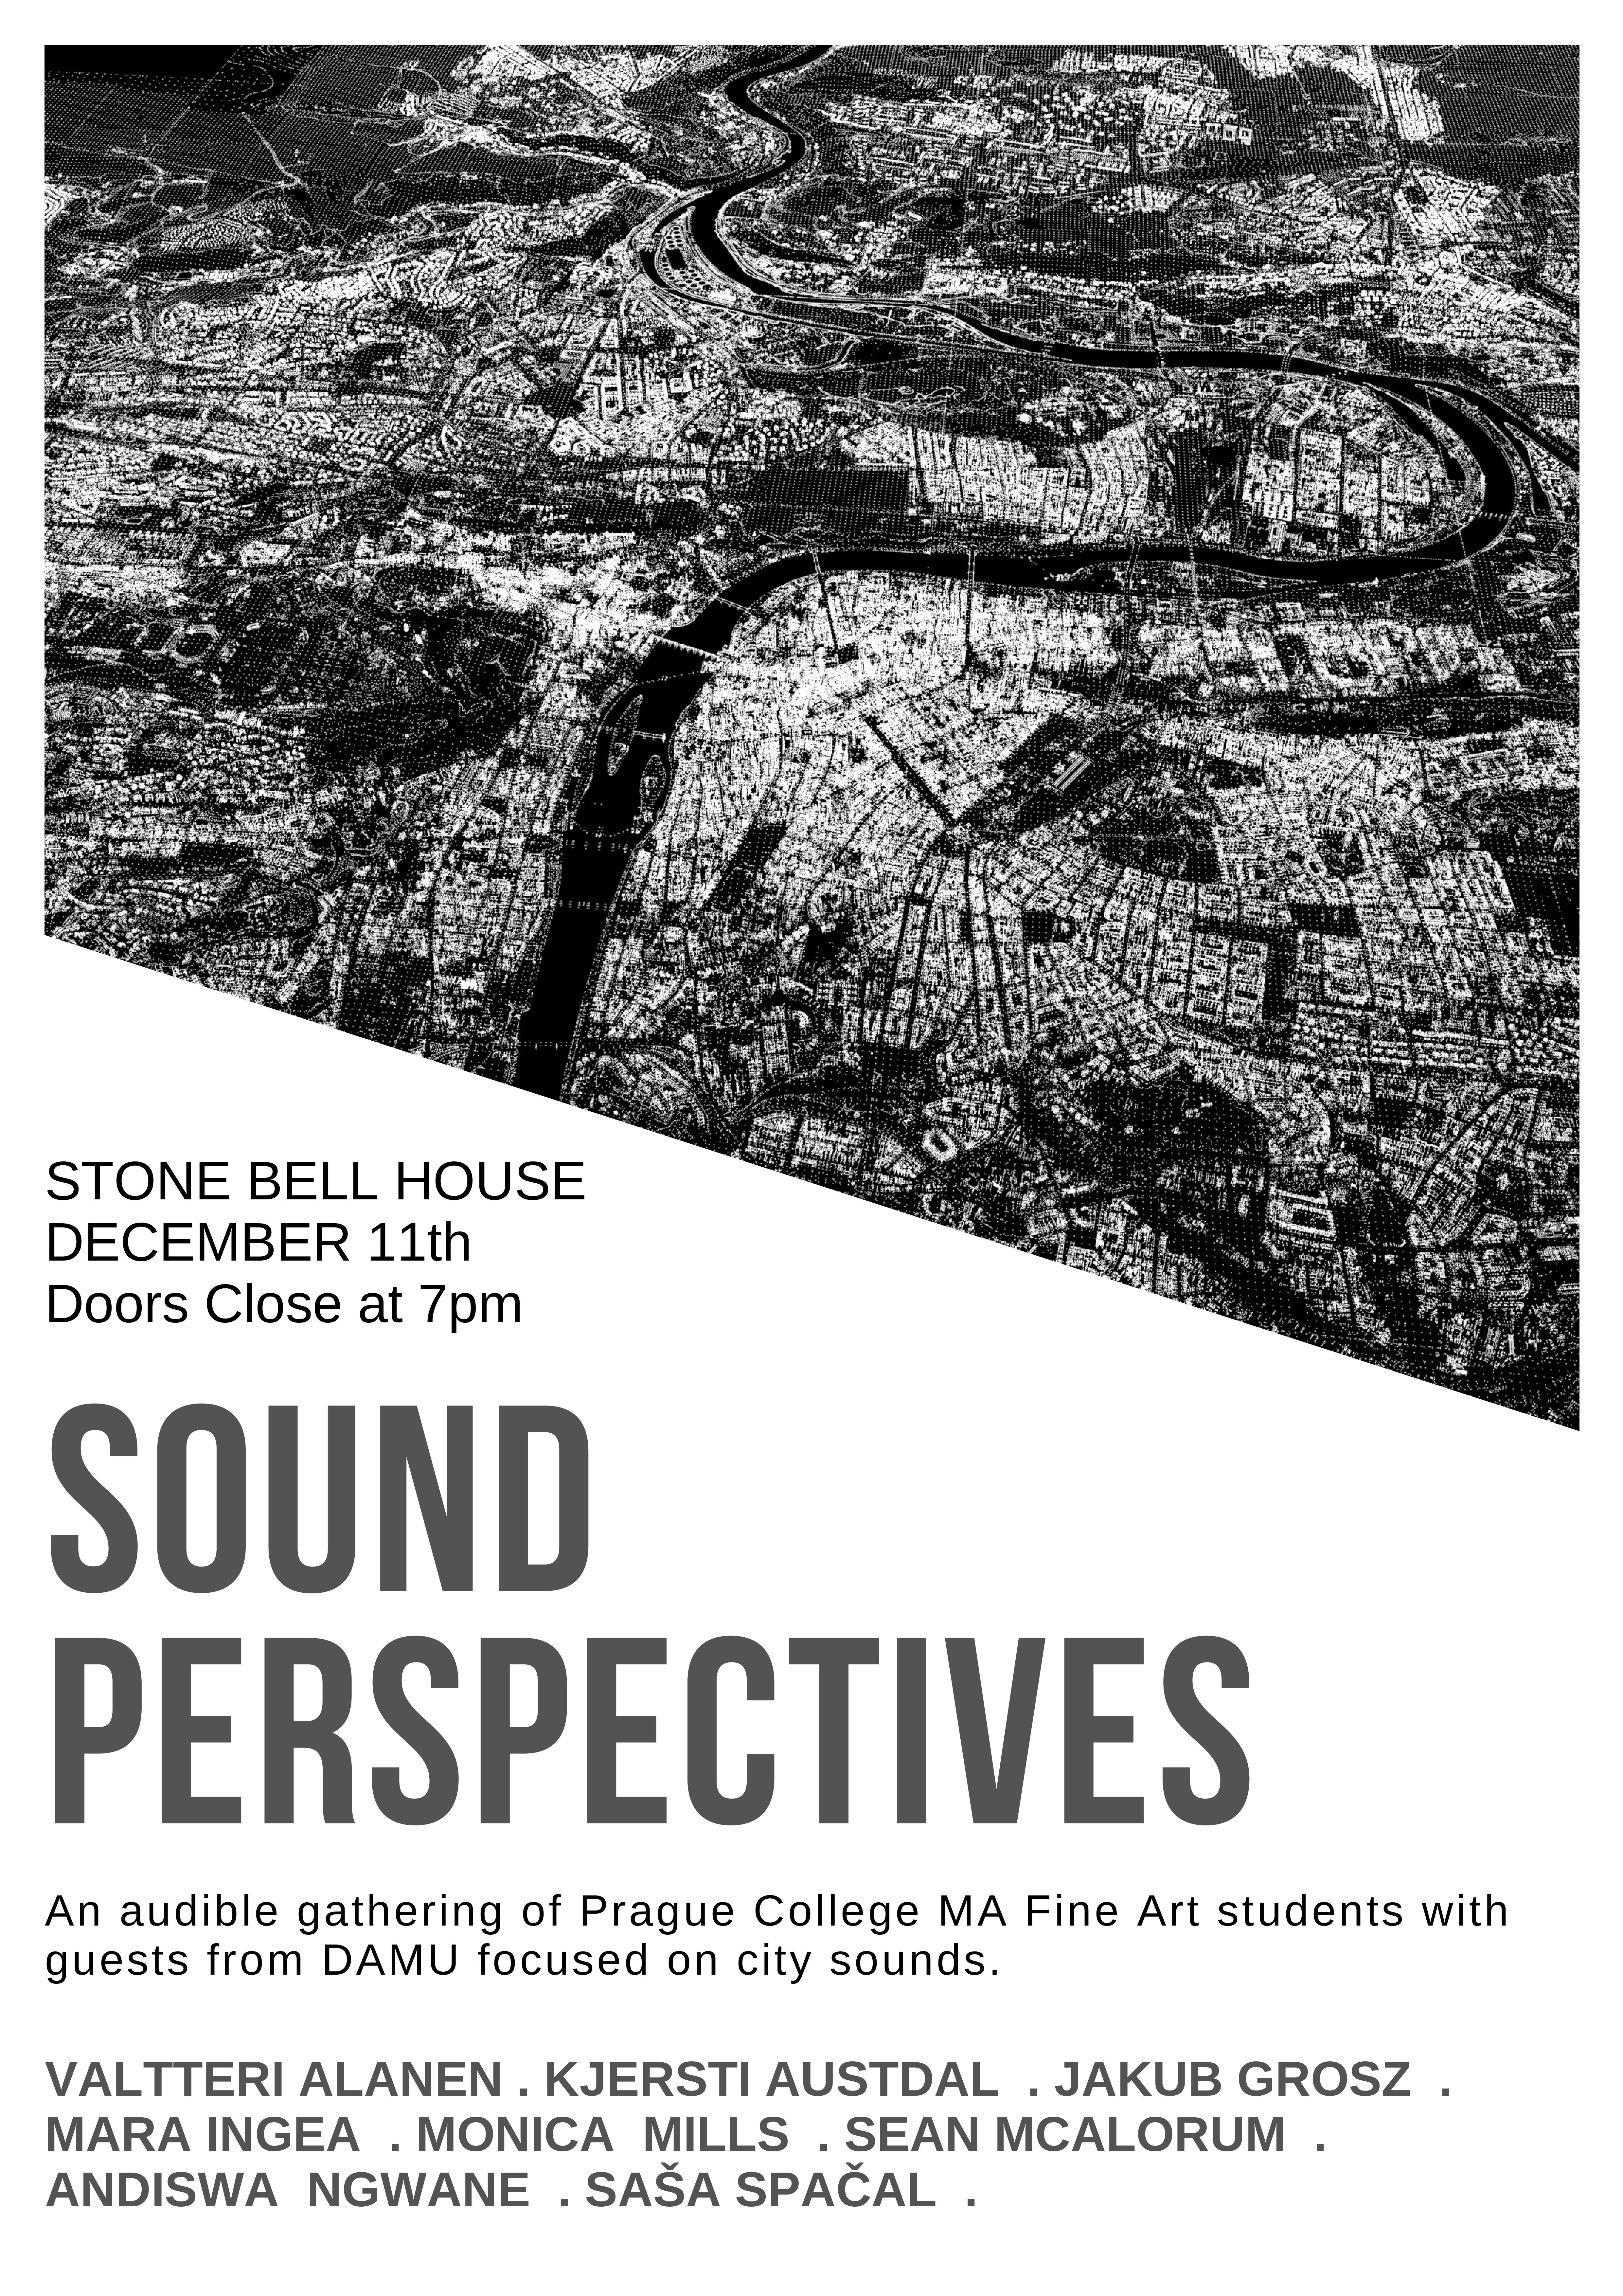 Sound Perspectives - MA Fine Art student performance